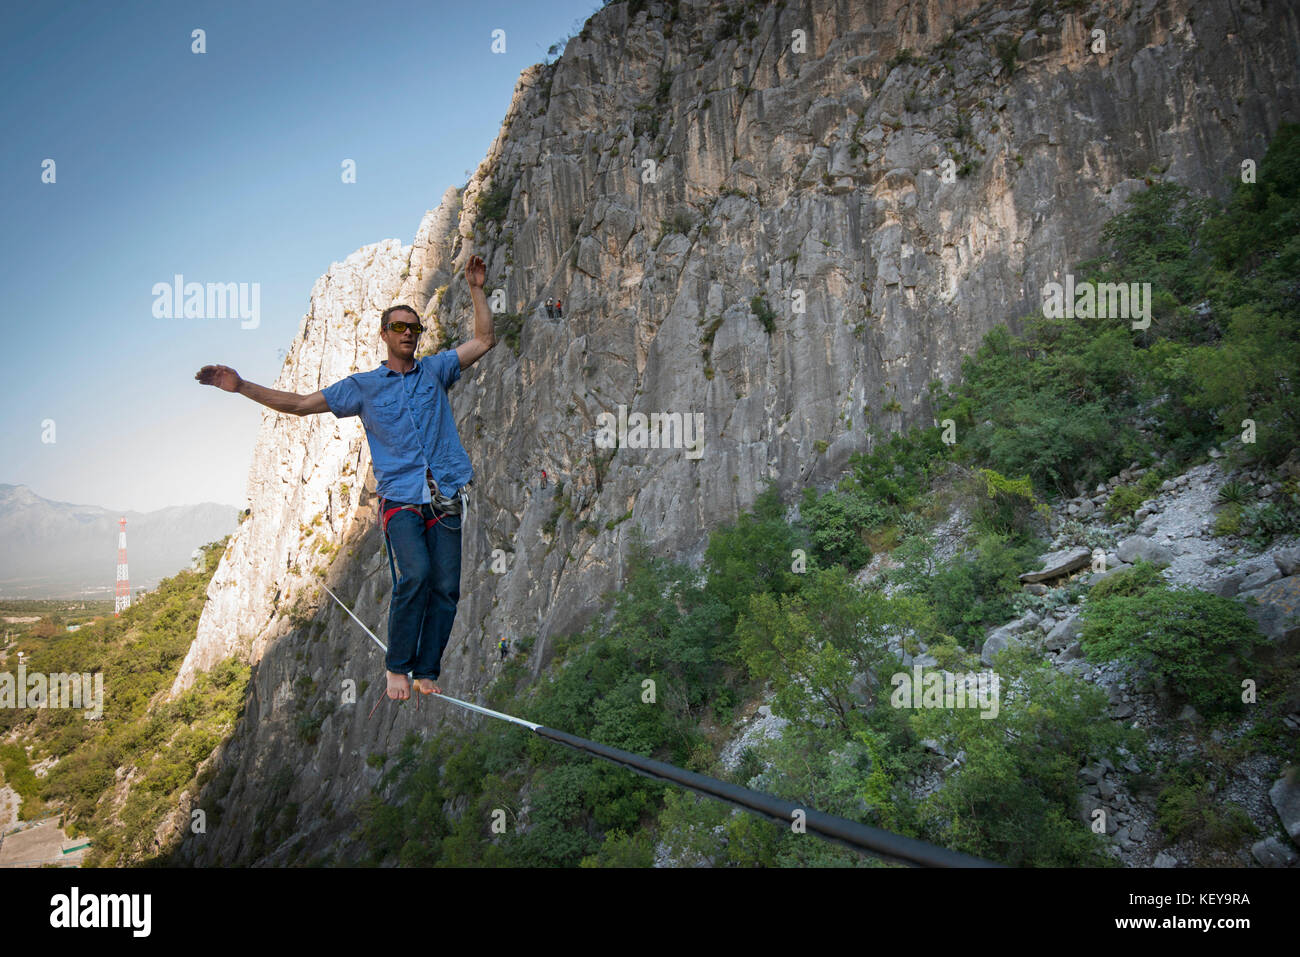 Adventurous man slacklining between two rock walls at El Portero Chico, Monterrey, Mexico Stock Photo